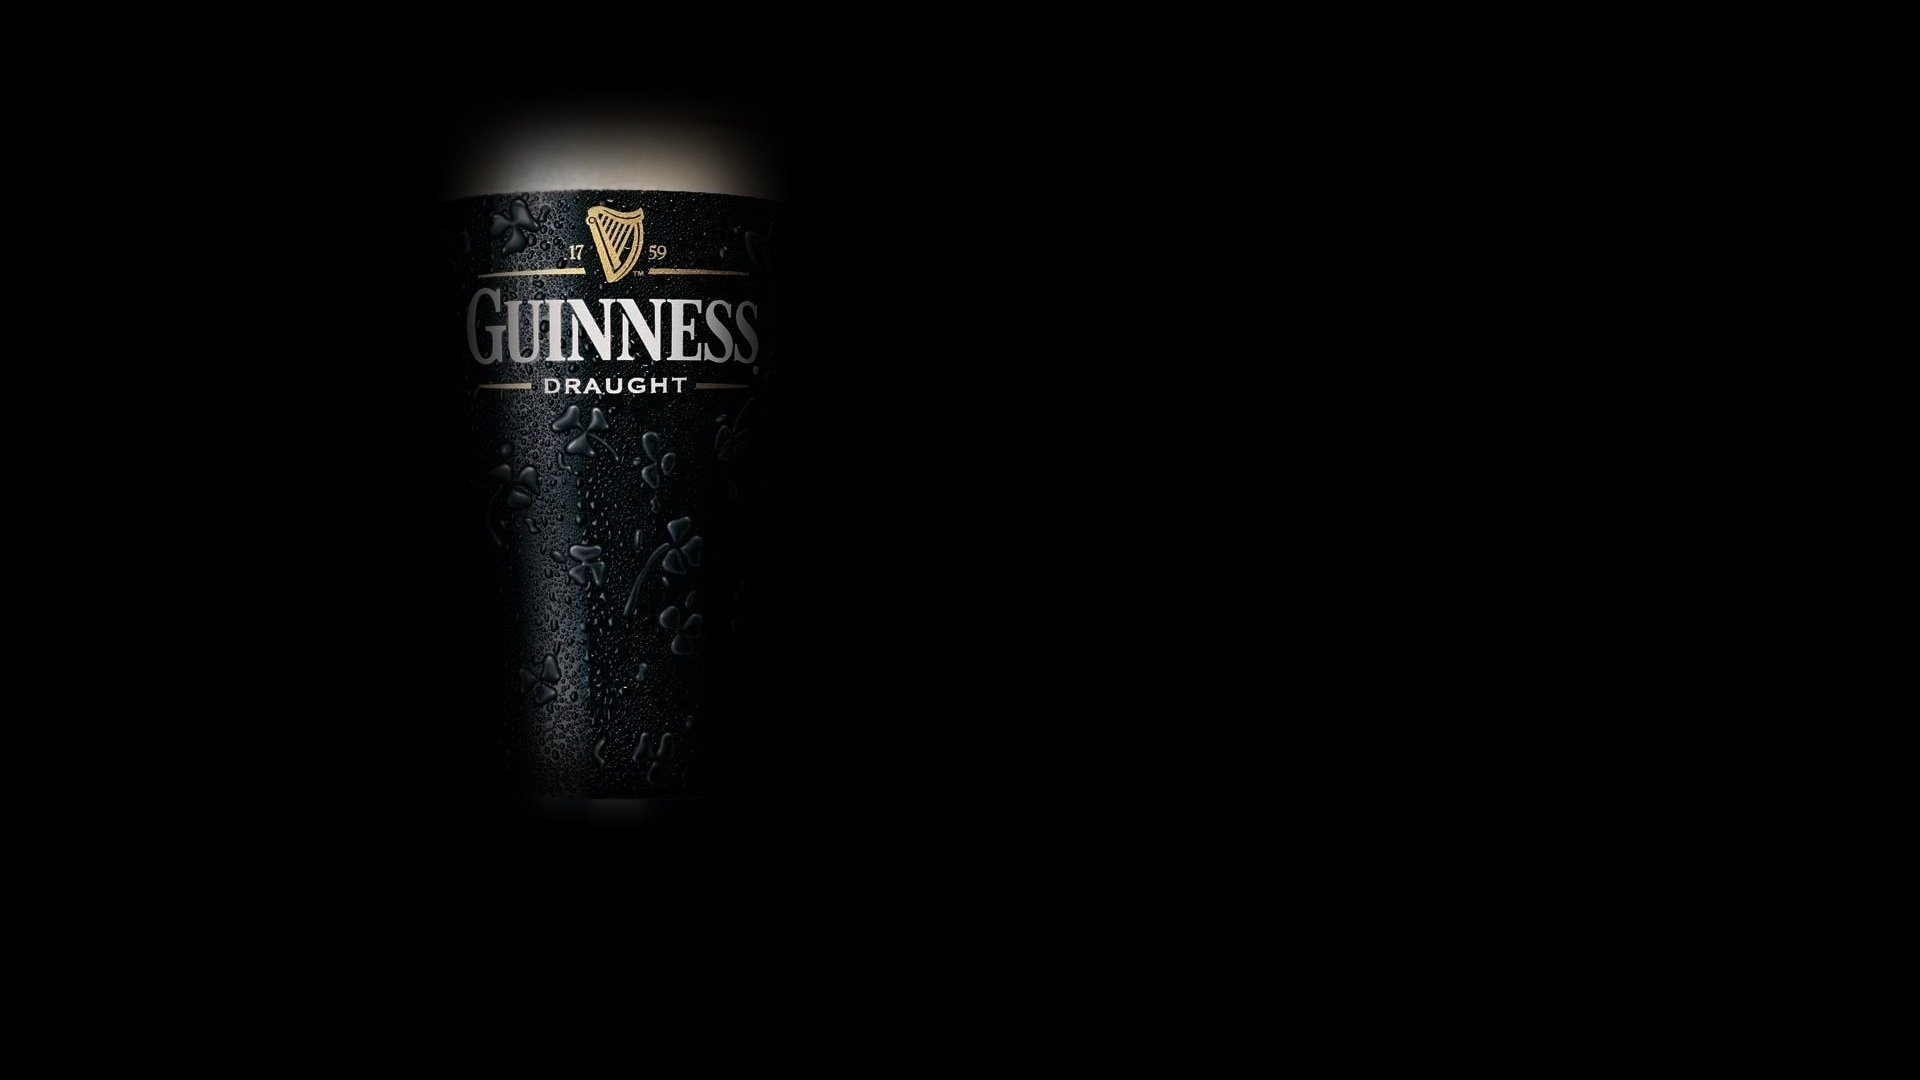 Guinness Beer for 1920 x 1080 HDTV 1080p resolution